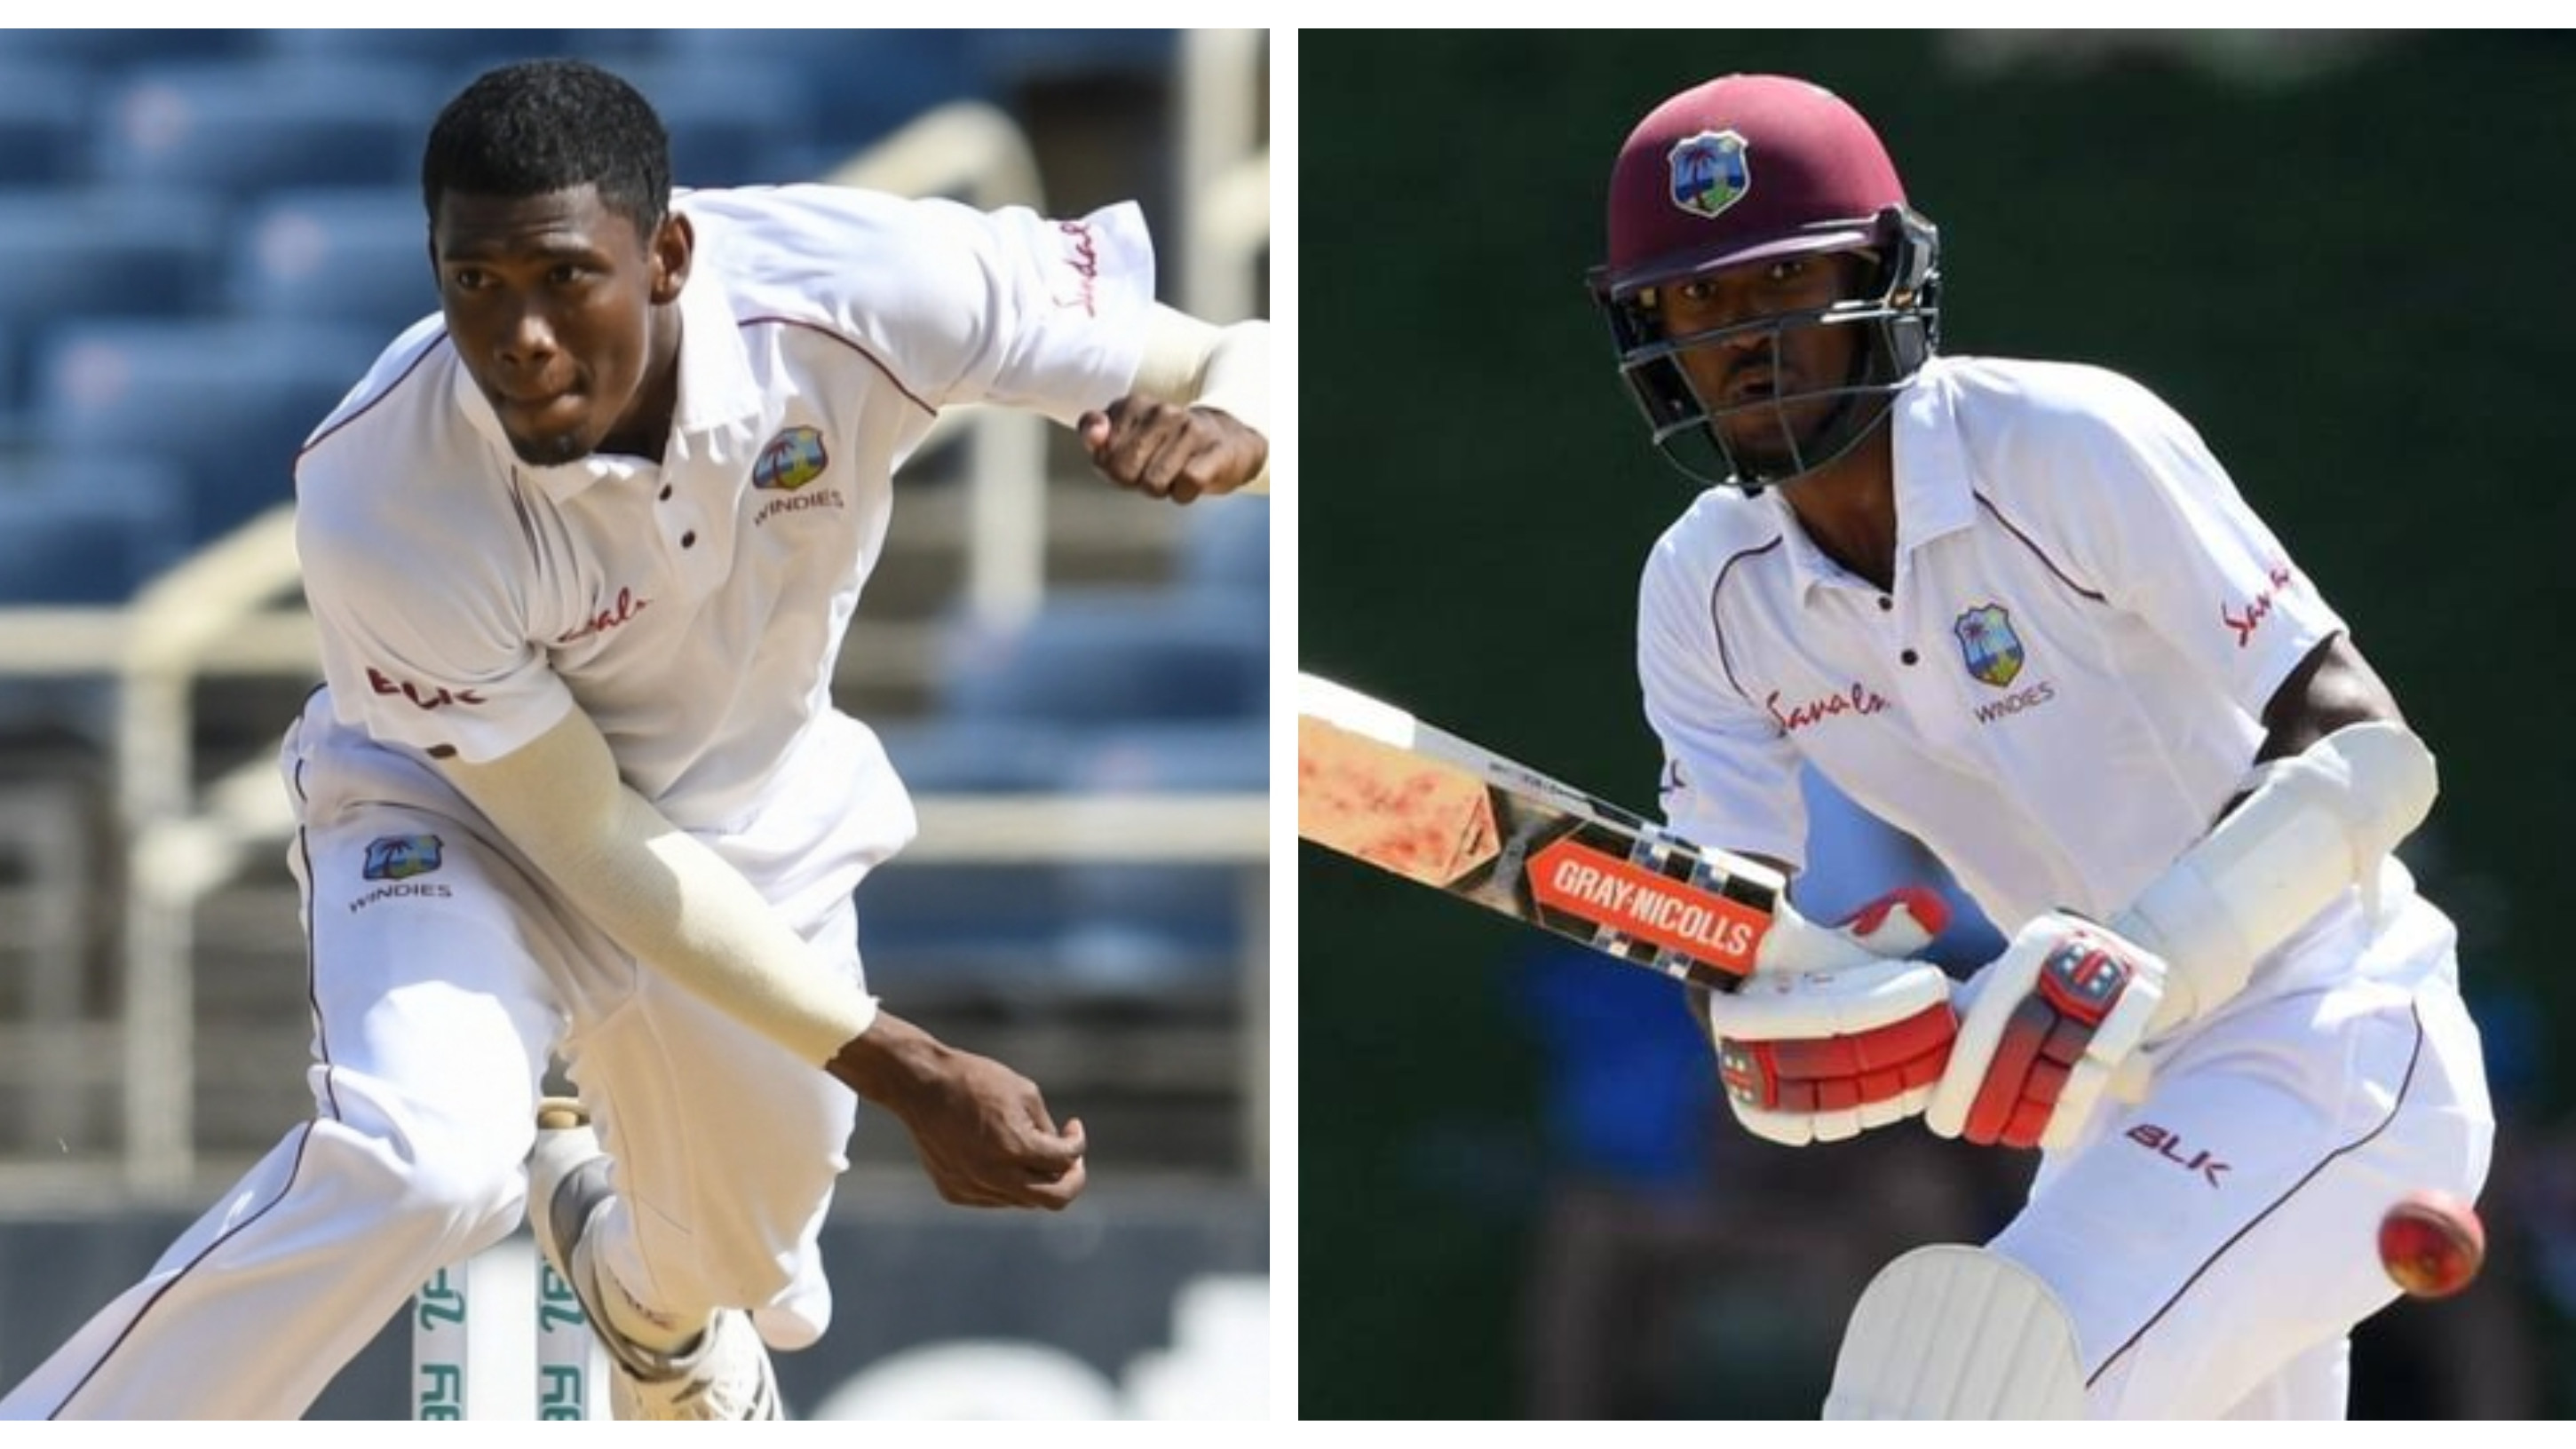 WI v ENG 2019: West Indies recall Keemo Paul, Brathwaite to lead the side in Jason Holder's absence at St. Lucia